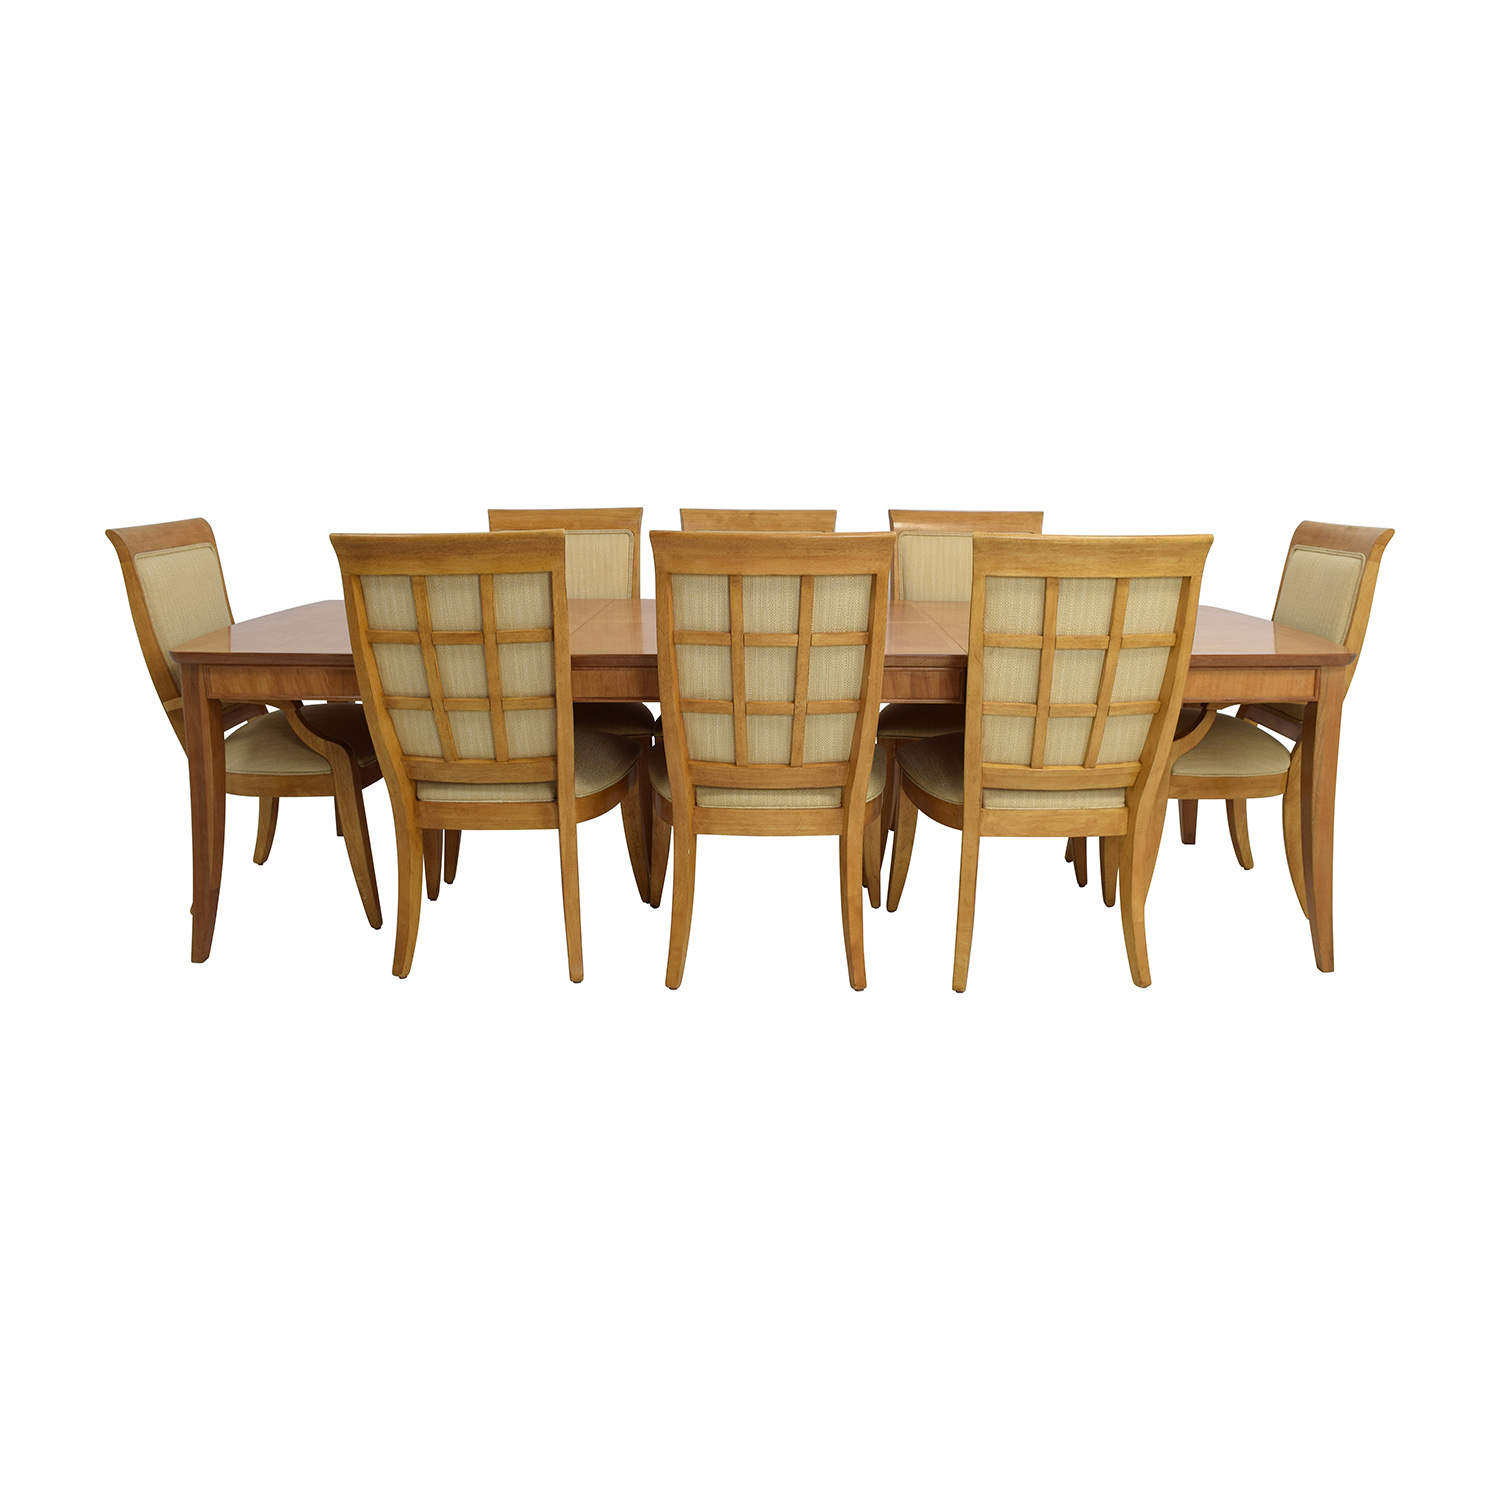 shop Thomasville Thomasville Nine-Piece Extendable Dining Set online